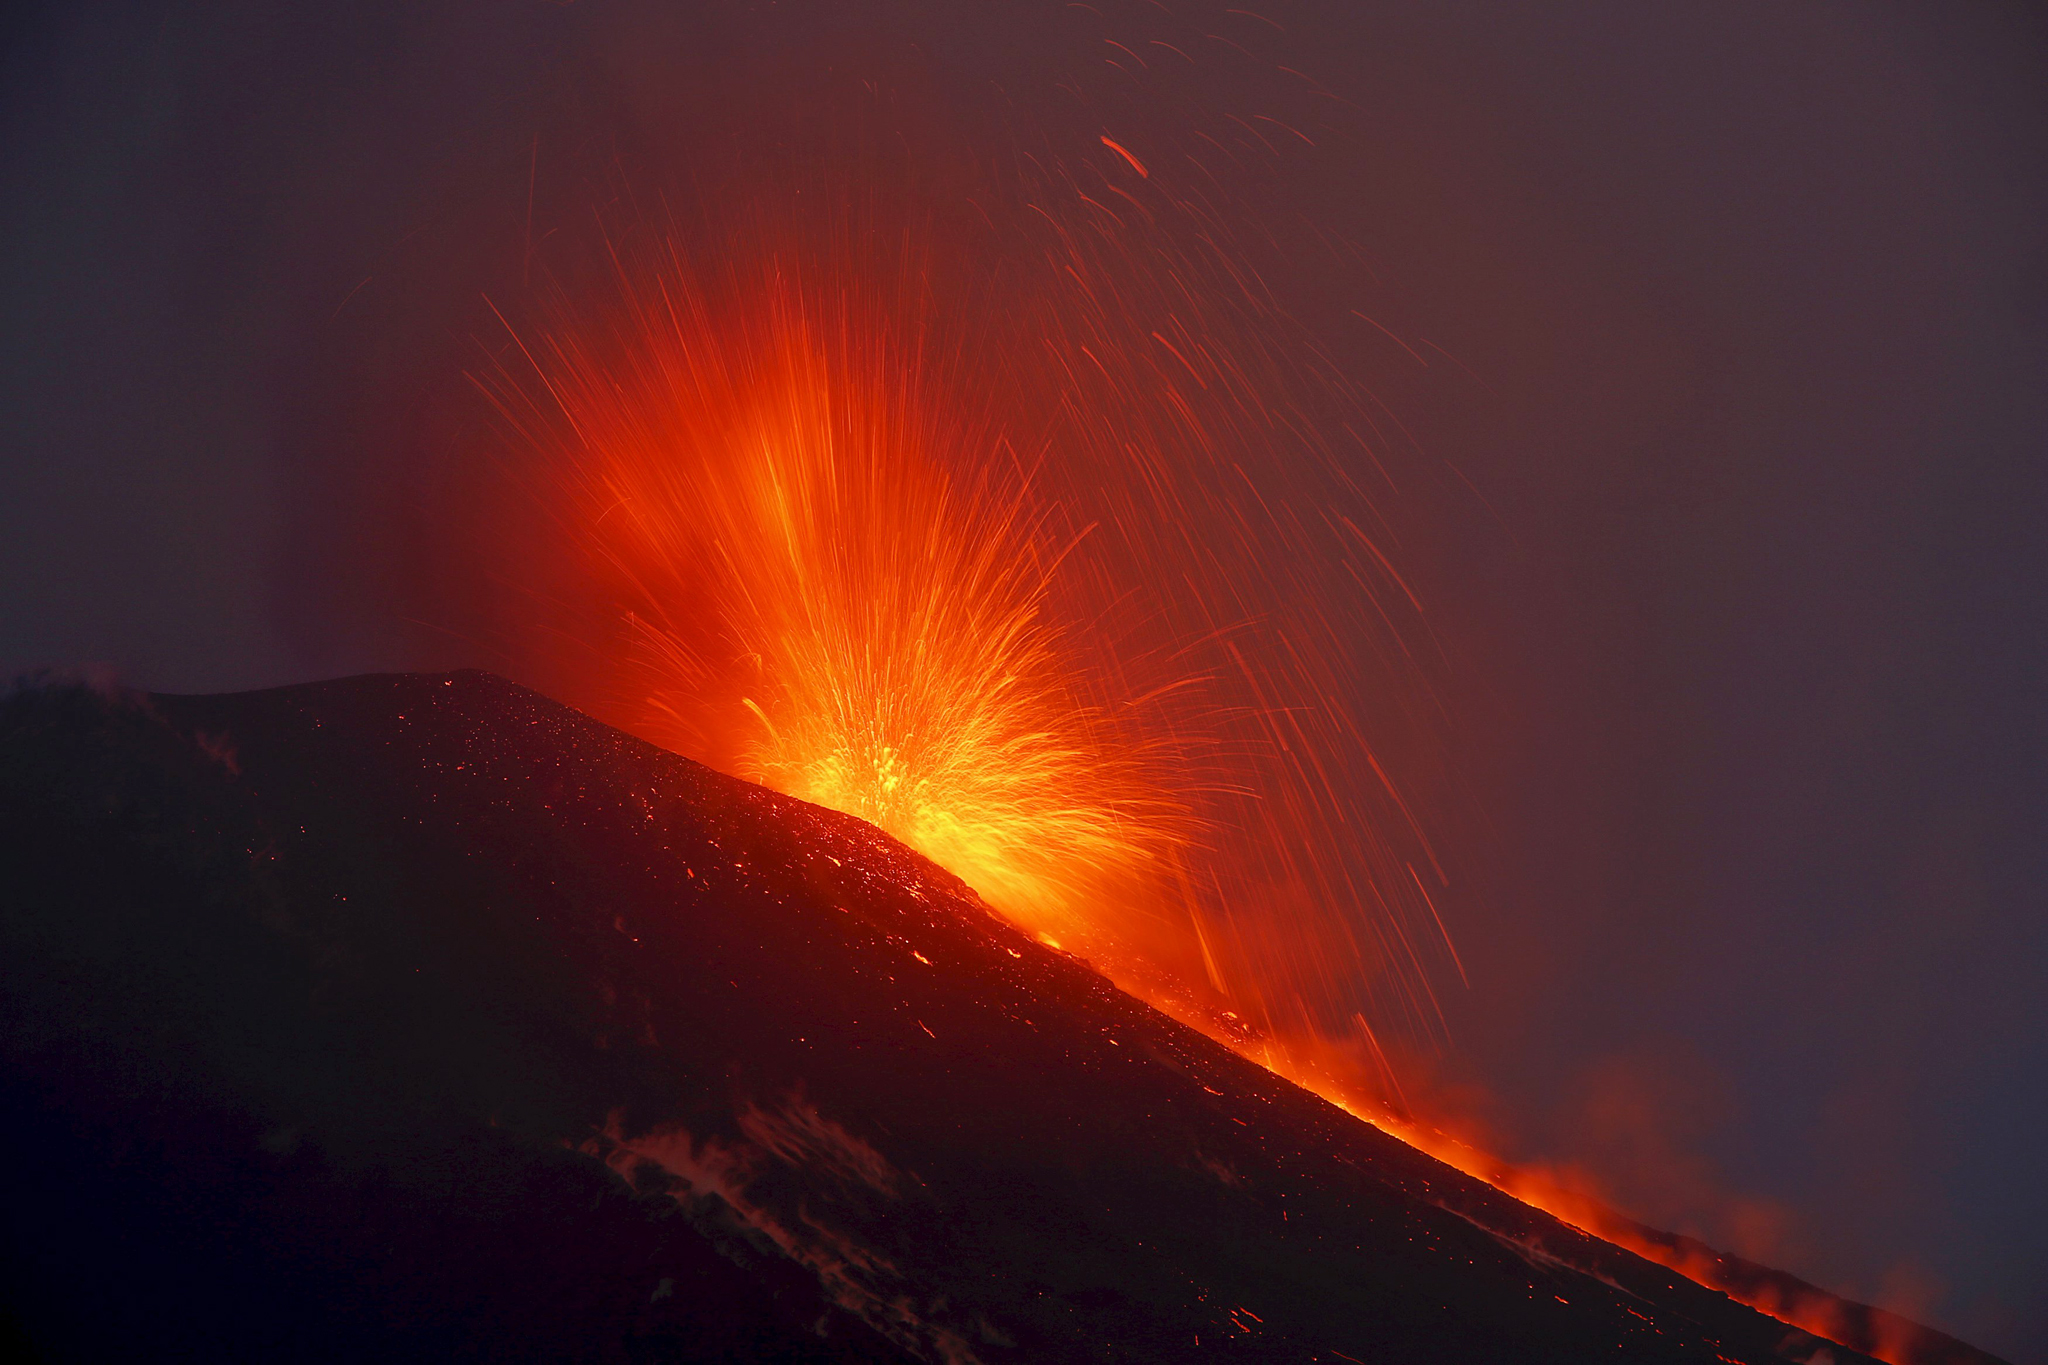 Italy's Mount Etna, Europe's tallest and most active volcano, spews lava as it erupts on the southern island of Sicily...Italy's Mount Etna, Europe's tallest and most active volcano, spews lava as it erupts on the southern island of Sicily, Italy December 7, 2015. REUTERS/Antonio Parrinello      TPX IMAGES OF THE DAY